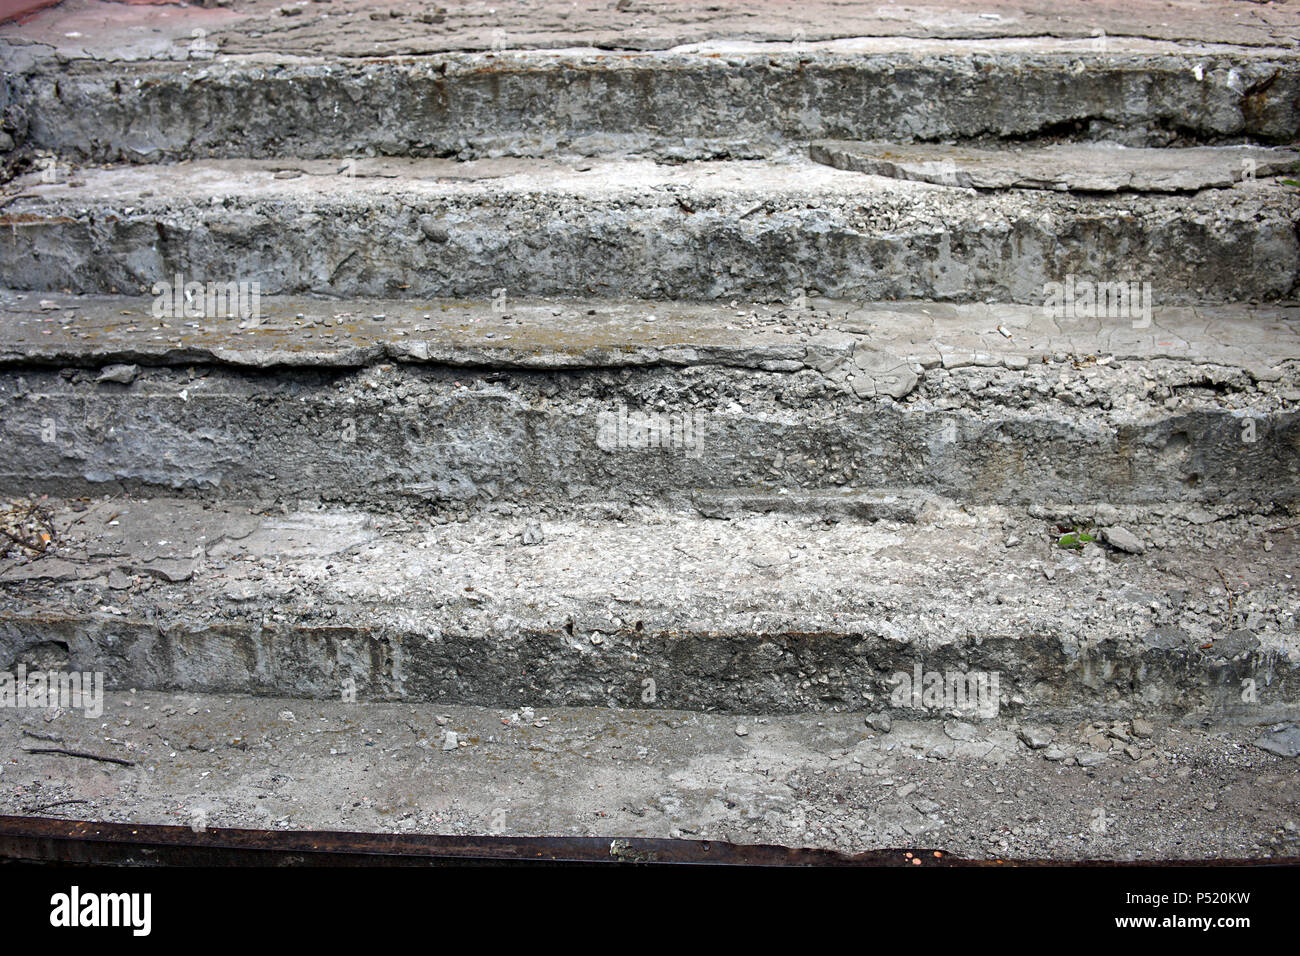 Old and shattered concrete steps leading nowhere - Stock Image